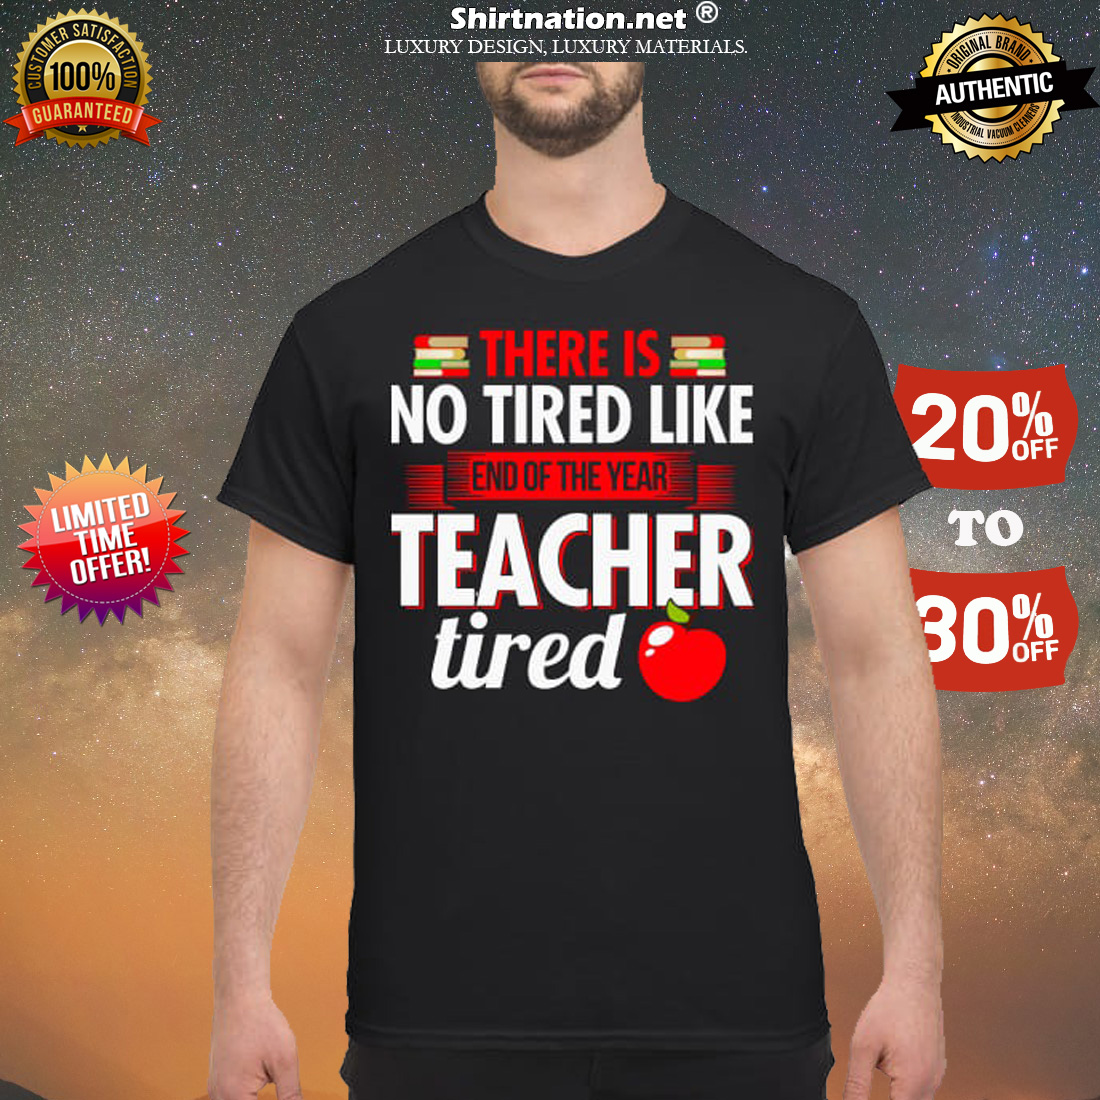 There is no tired like end of year teacher tired shirt